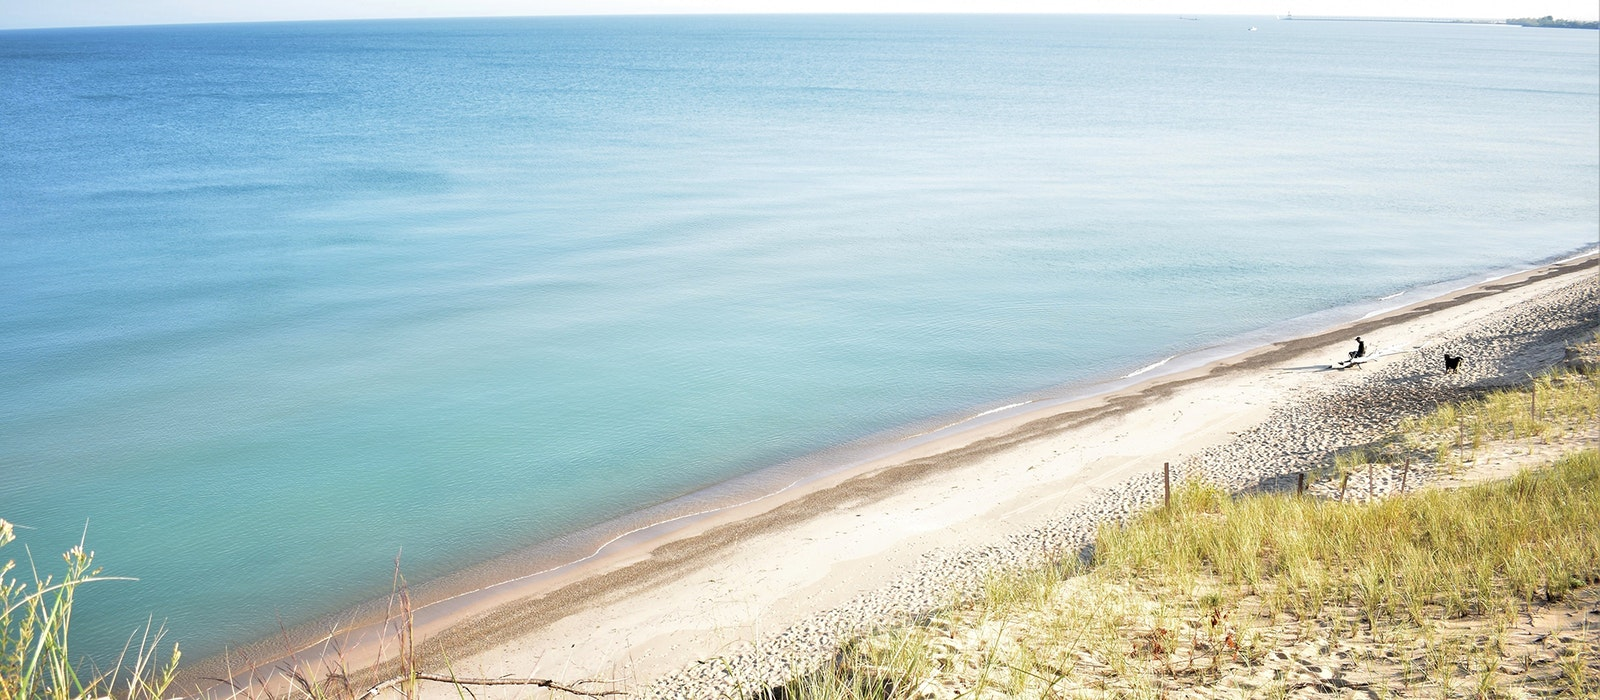 Indiana Dunes National Lakeshore is now officially a national park.